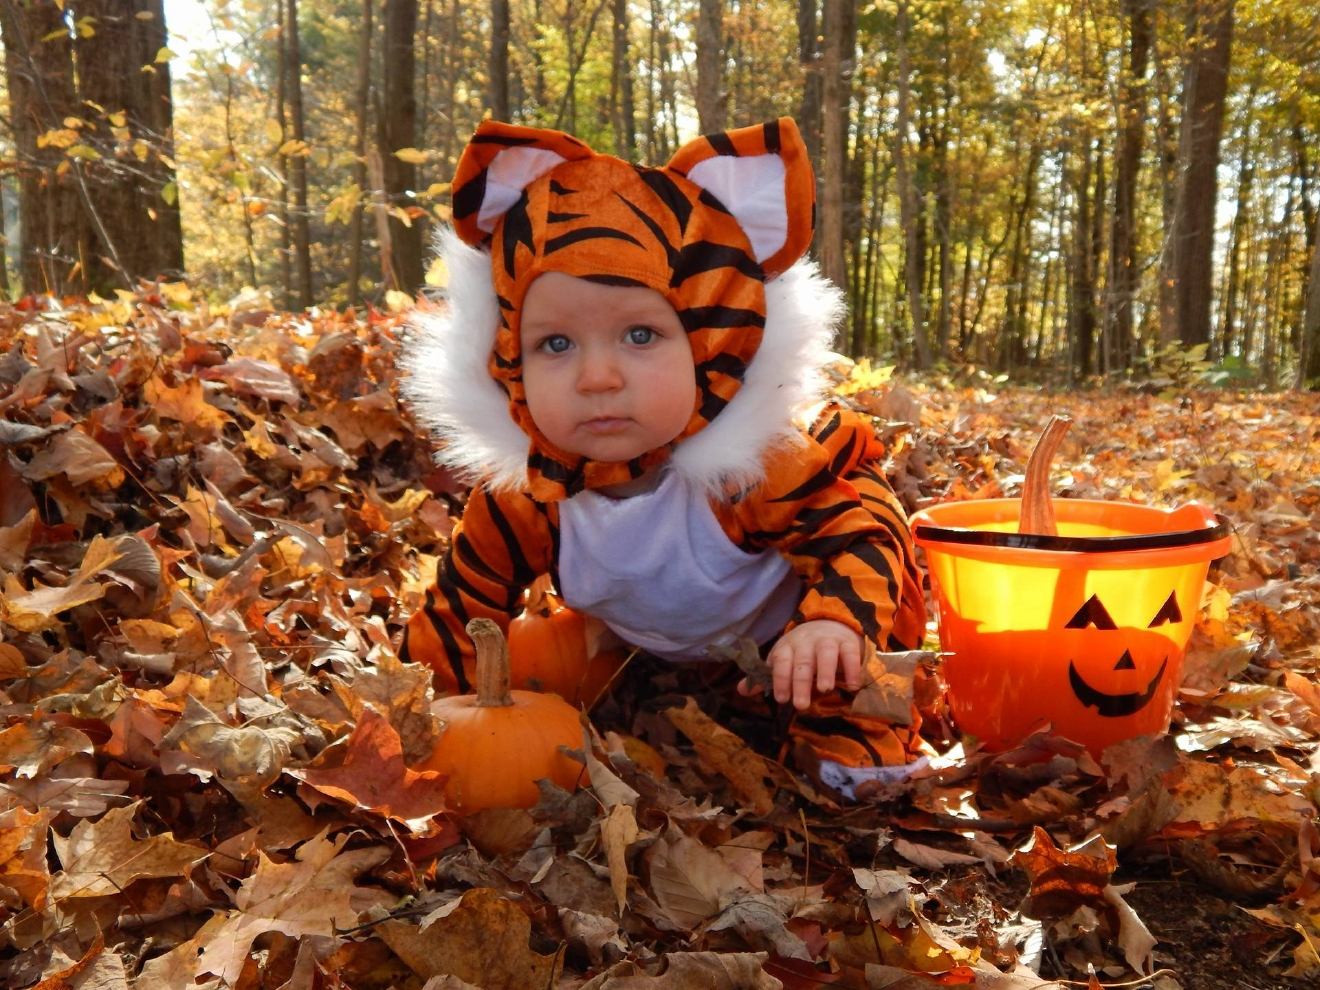 This little tiger cub Laura was submitted by Amy Burke